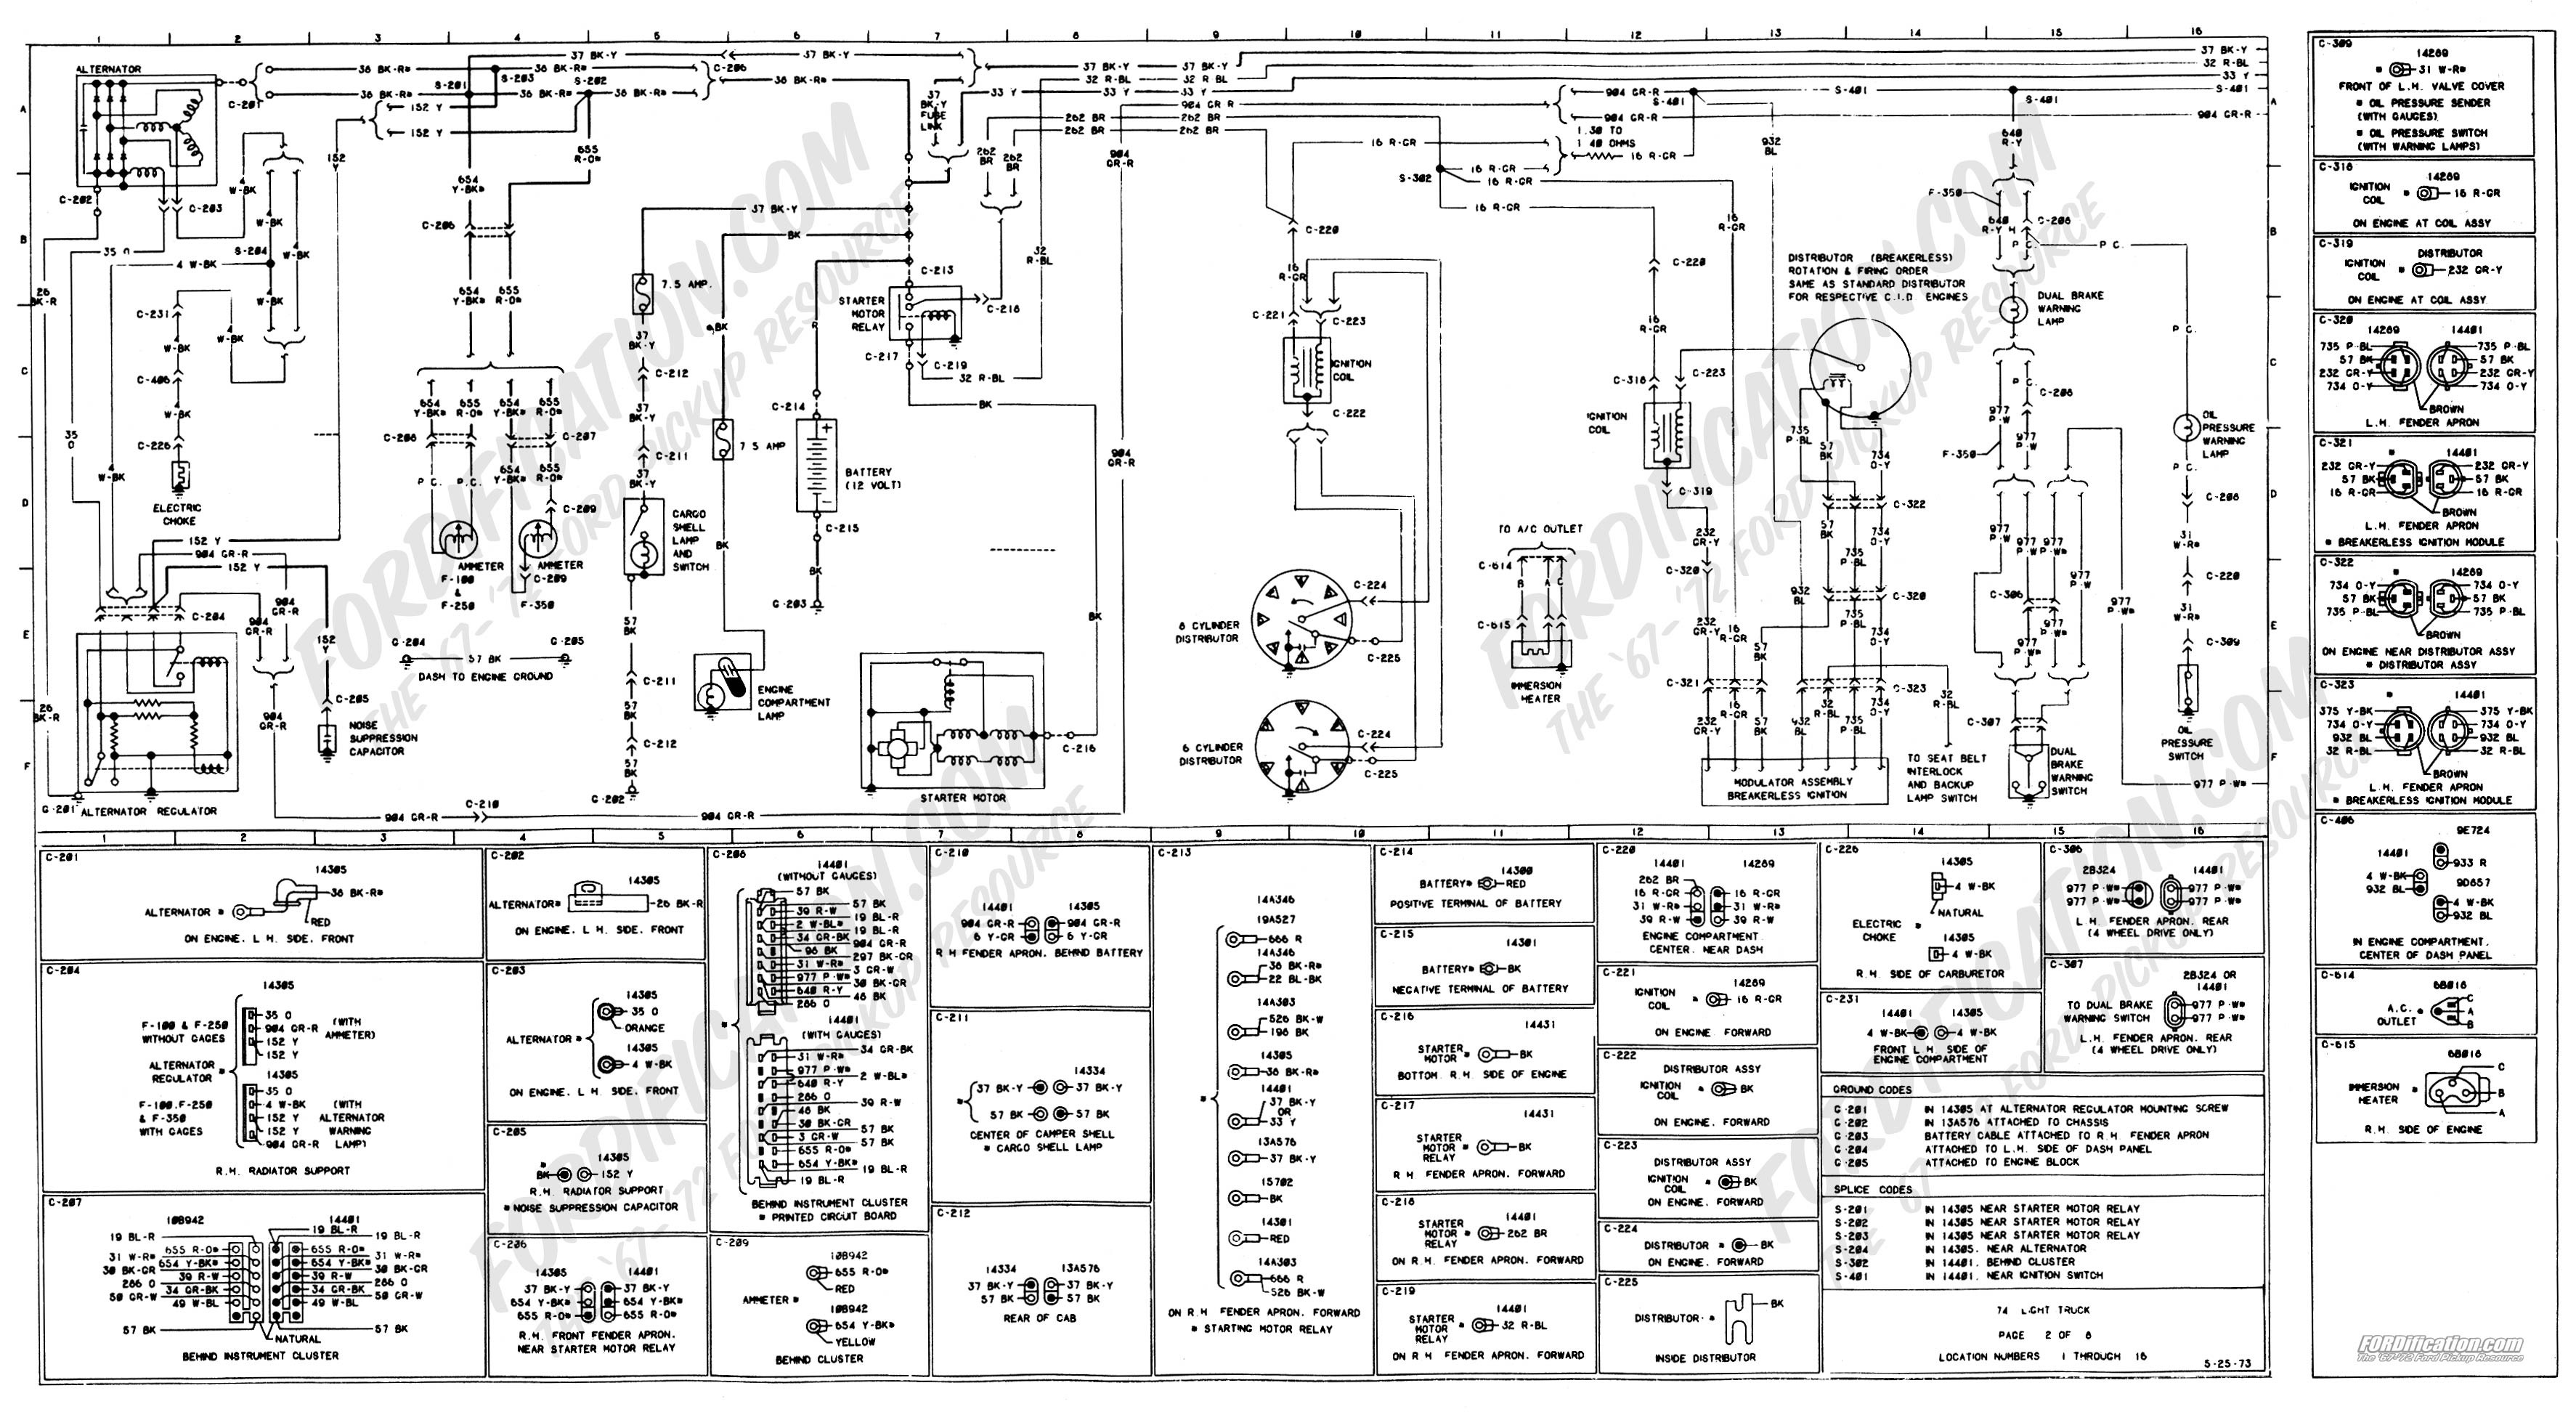 Watch in addition Discussion T20728 ds603393 additionally 1979 Chevy Truck Wiring Diagram furthermore 2001 Ford F350 Trailer Wiring Diagram Efcaviation 2003 F150 Harness furthermore 2000 Ford F350 Transmission Wiring Diagrams. on 2003 ford expedition neutral safety switch wiring diagram